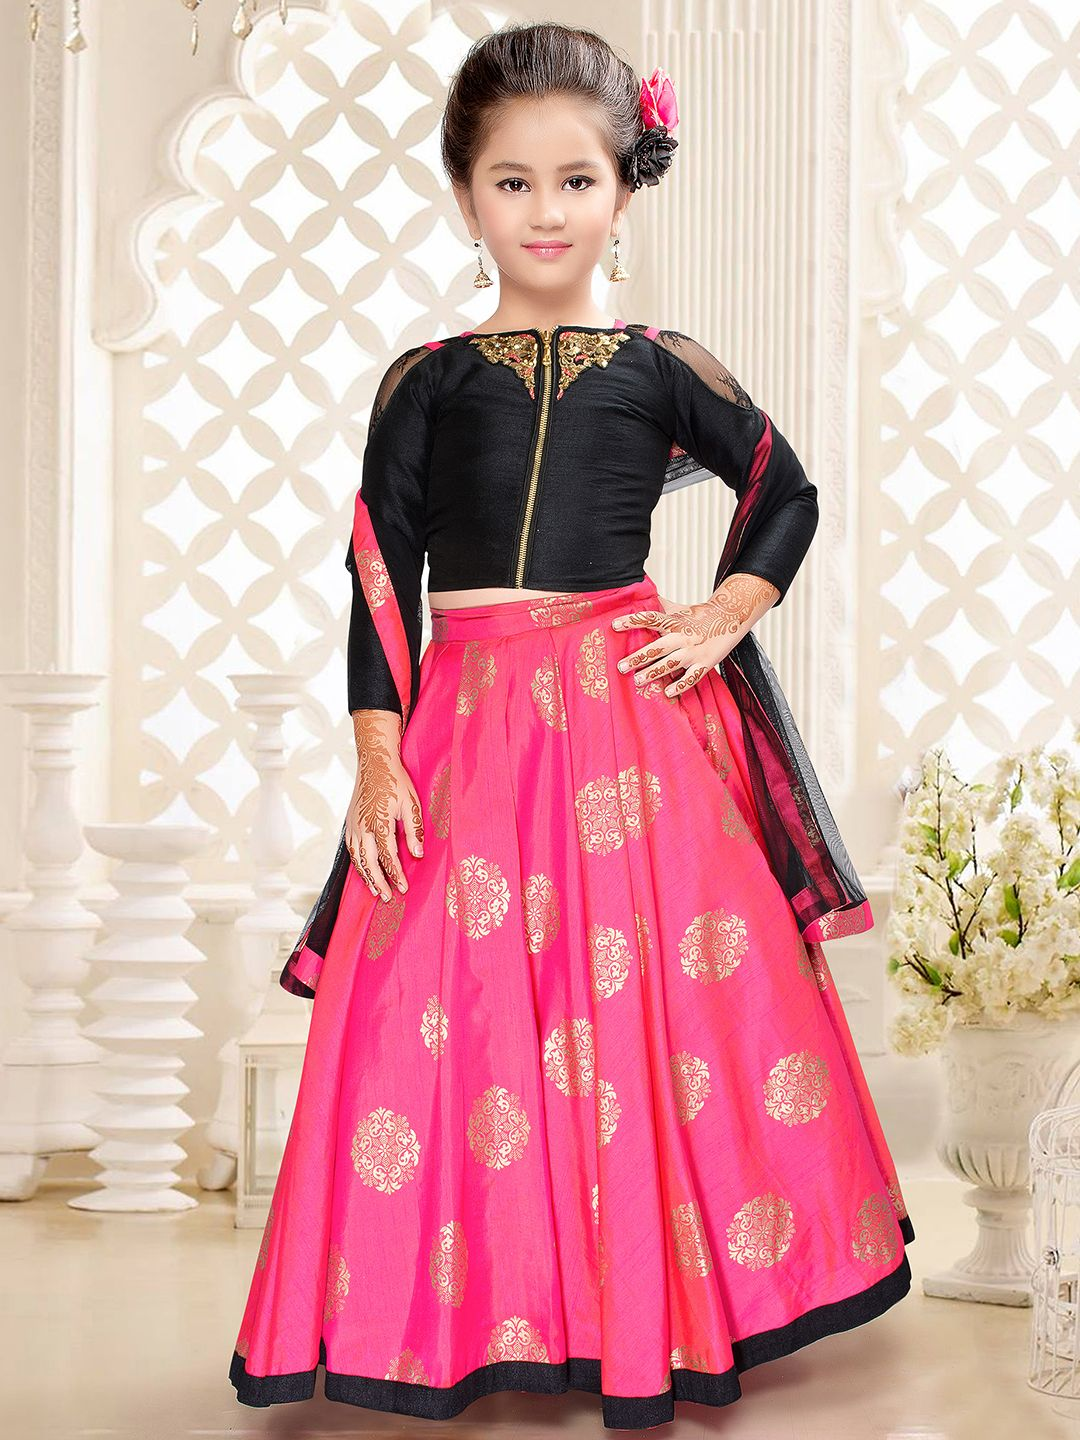 Top Indian wedding style for your little Princess | Girls ...